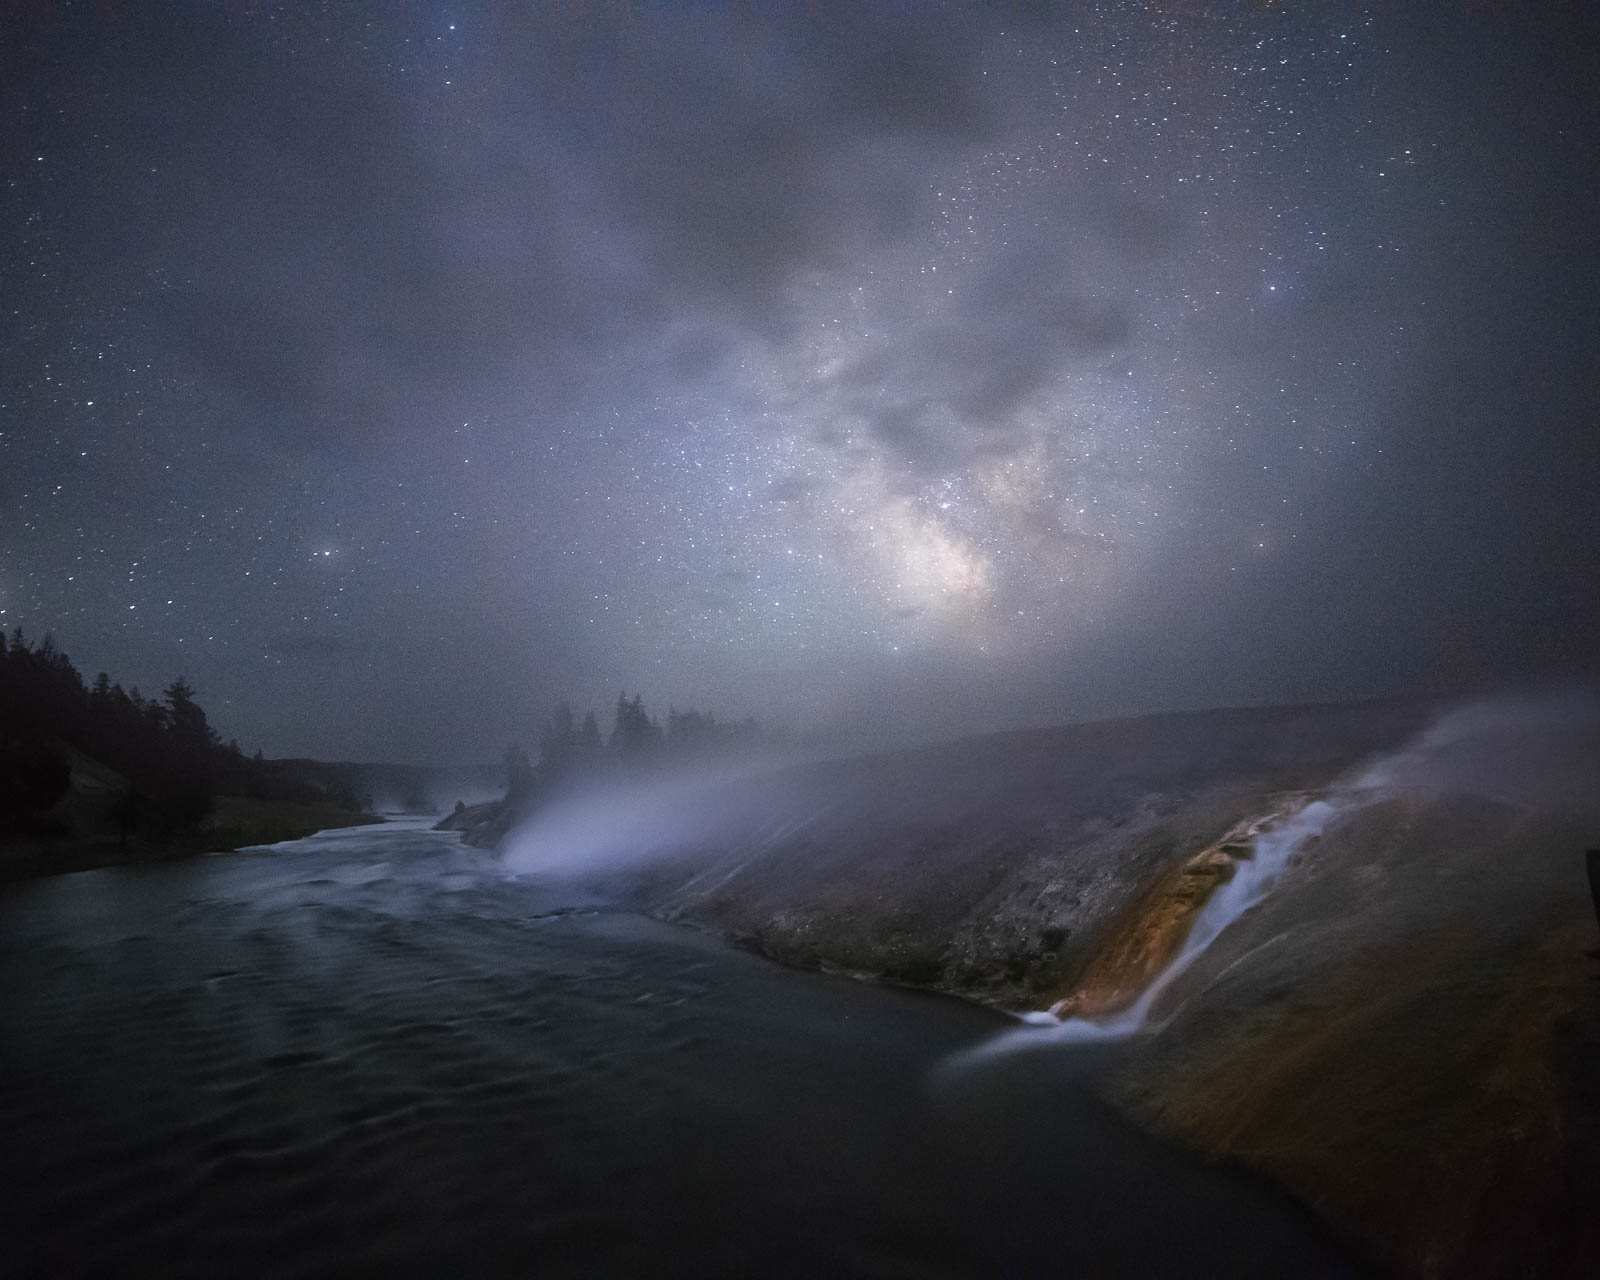 Night, Time, Wyoming, blue, firehole river, milky way, nightscape, river, rocky mountains, stars, yellowstone national park...